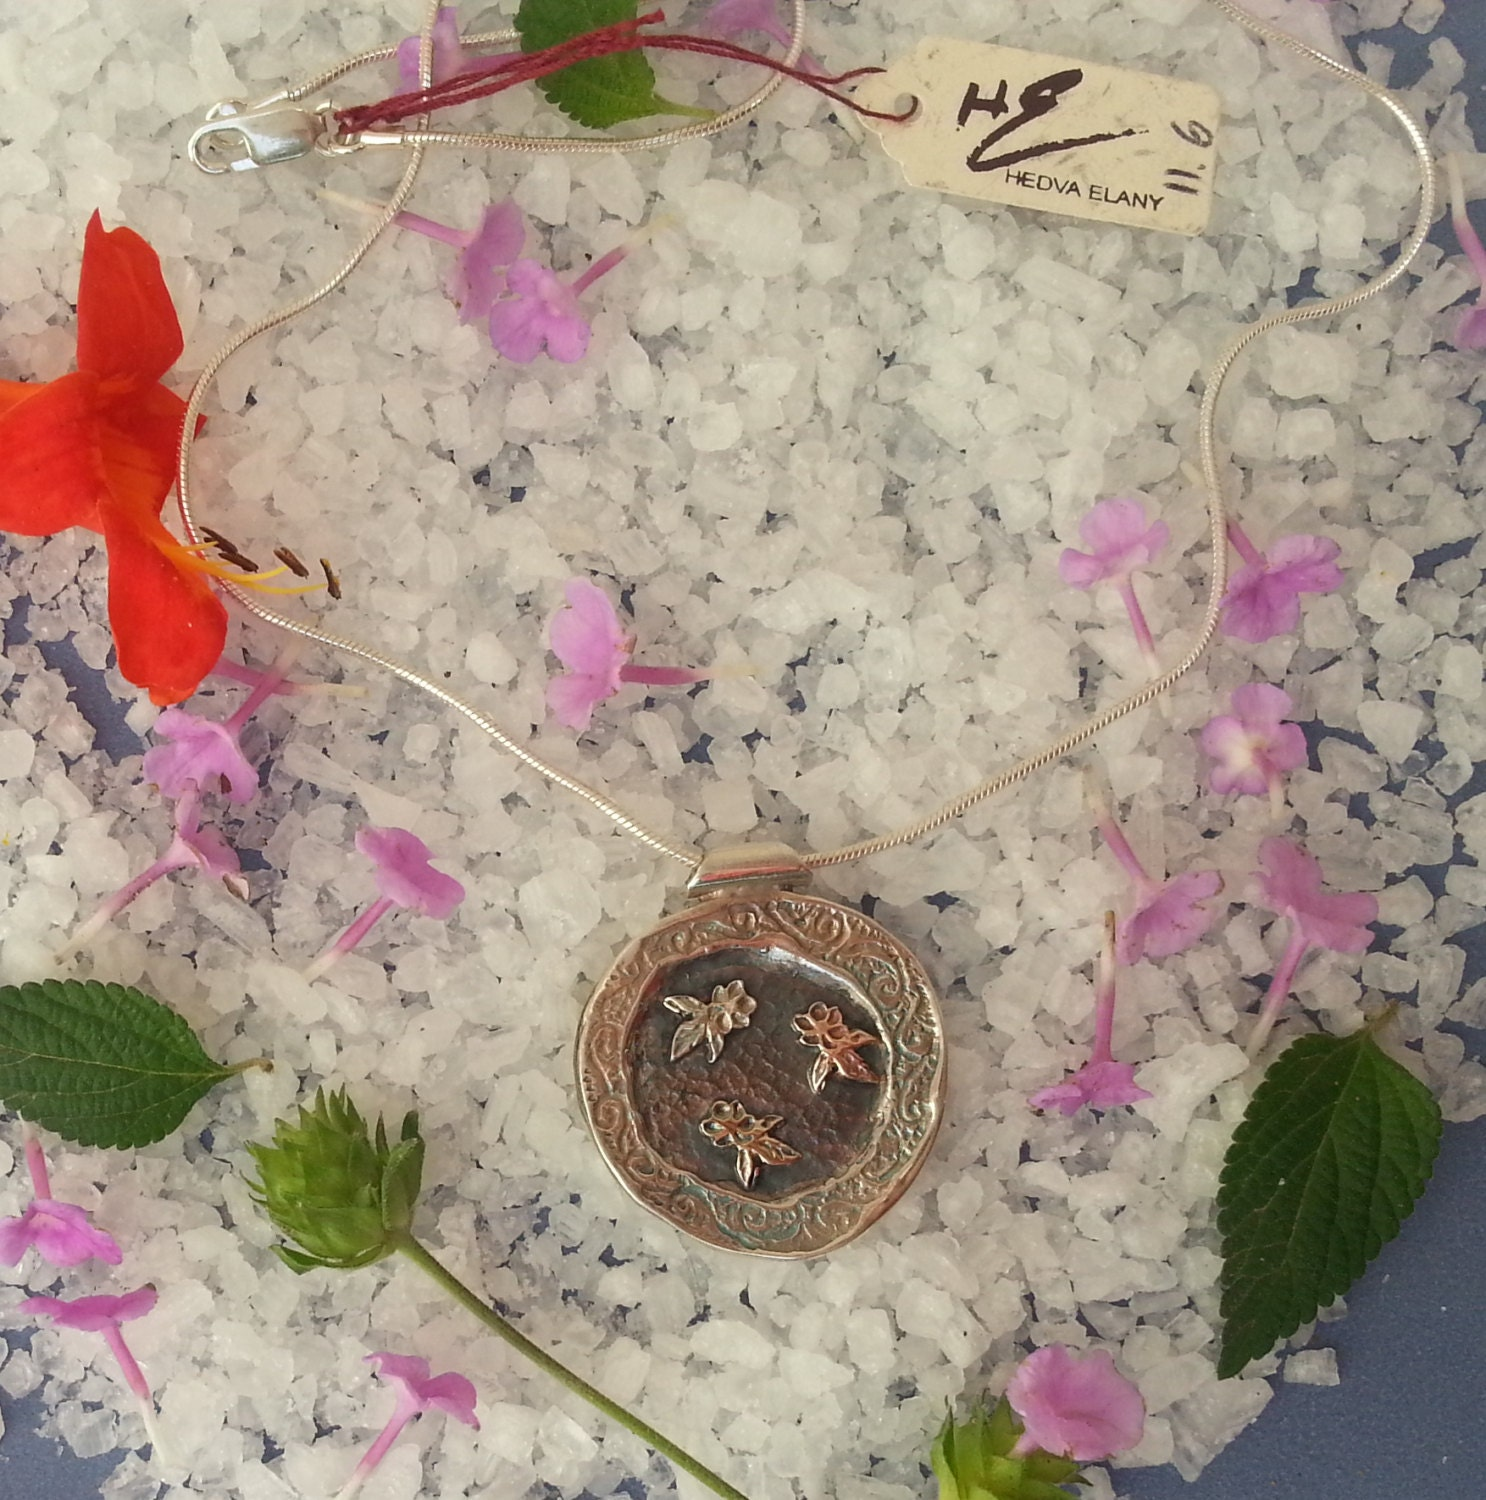 Dancing flowers, Spring flowers in silver, yellow gold and rose gold, on a sterling silver round coin pendant